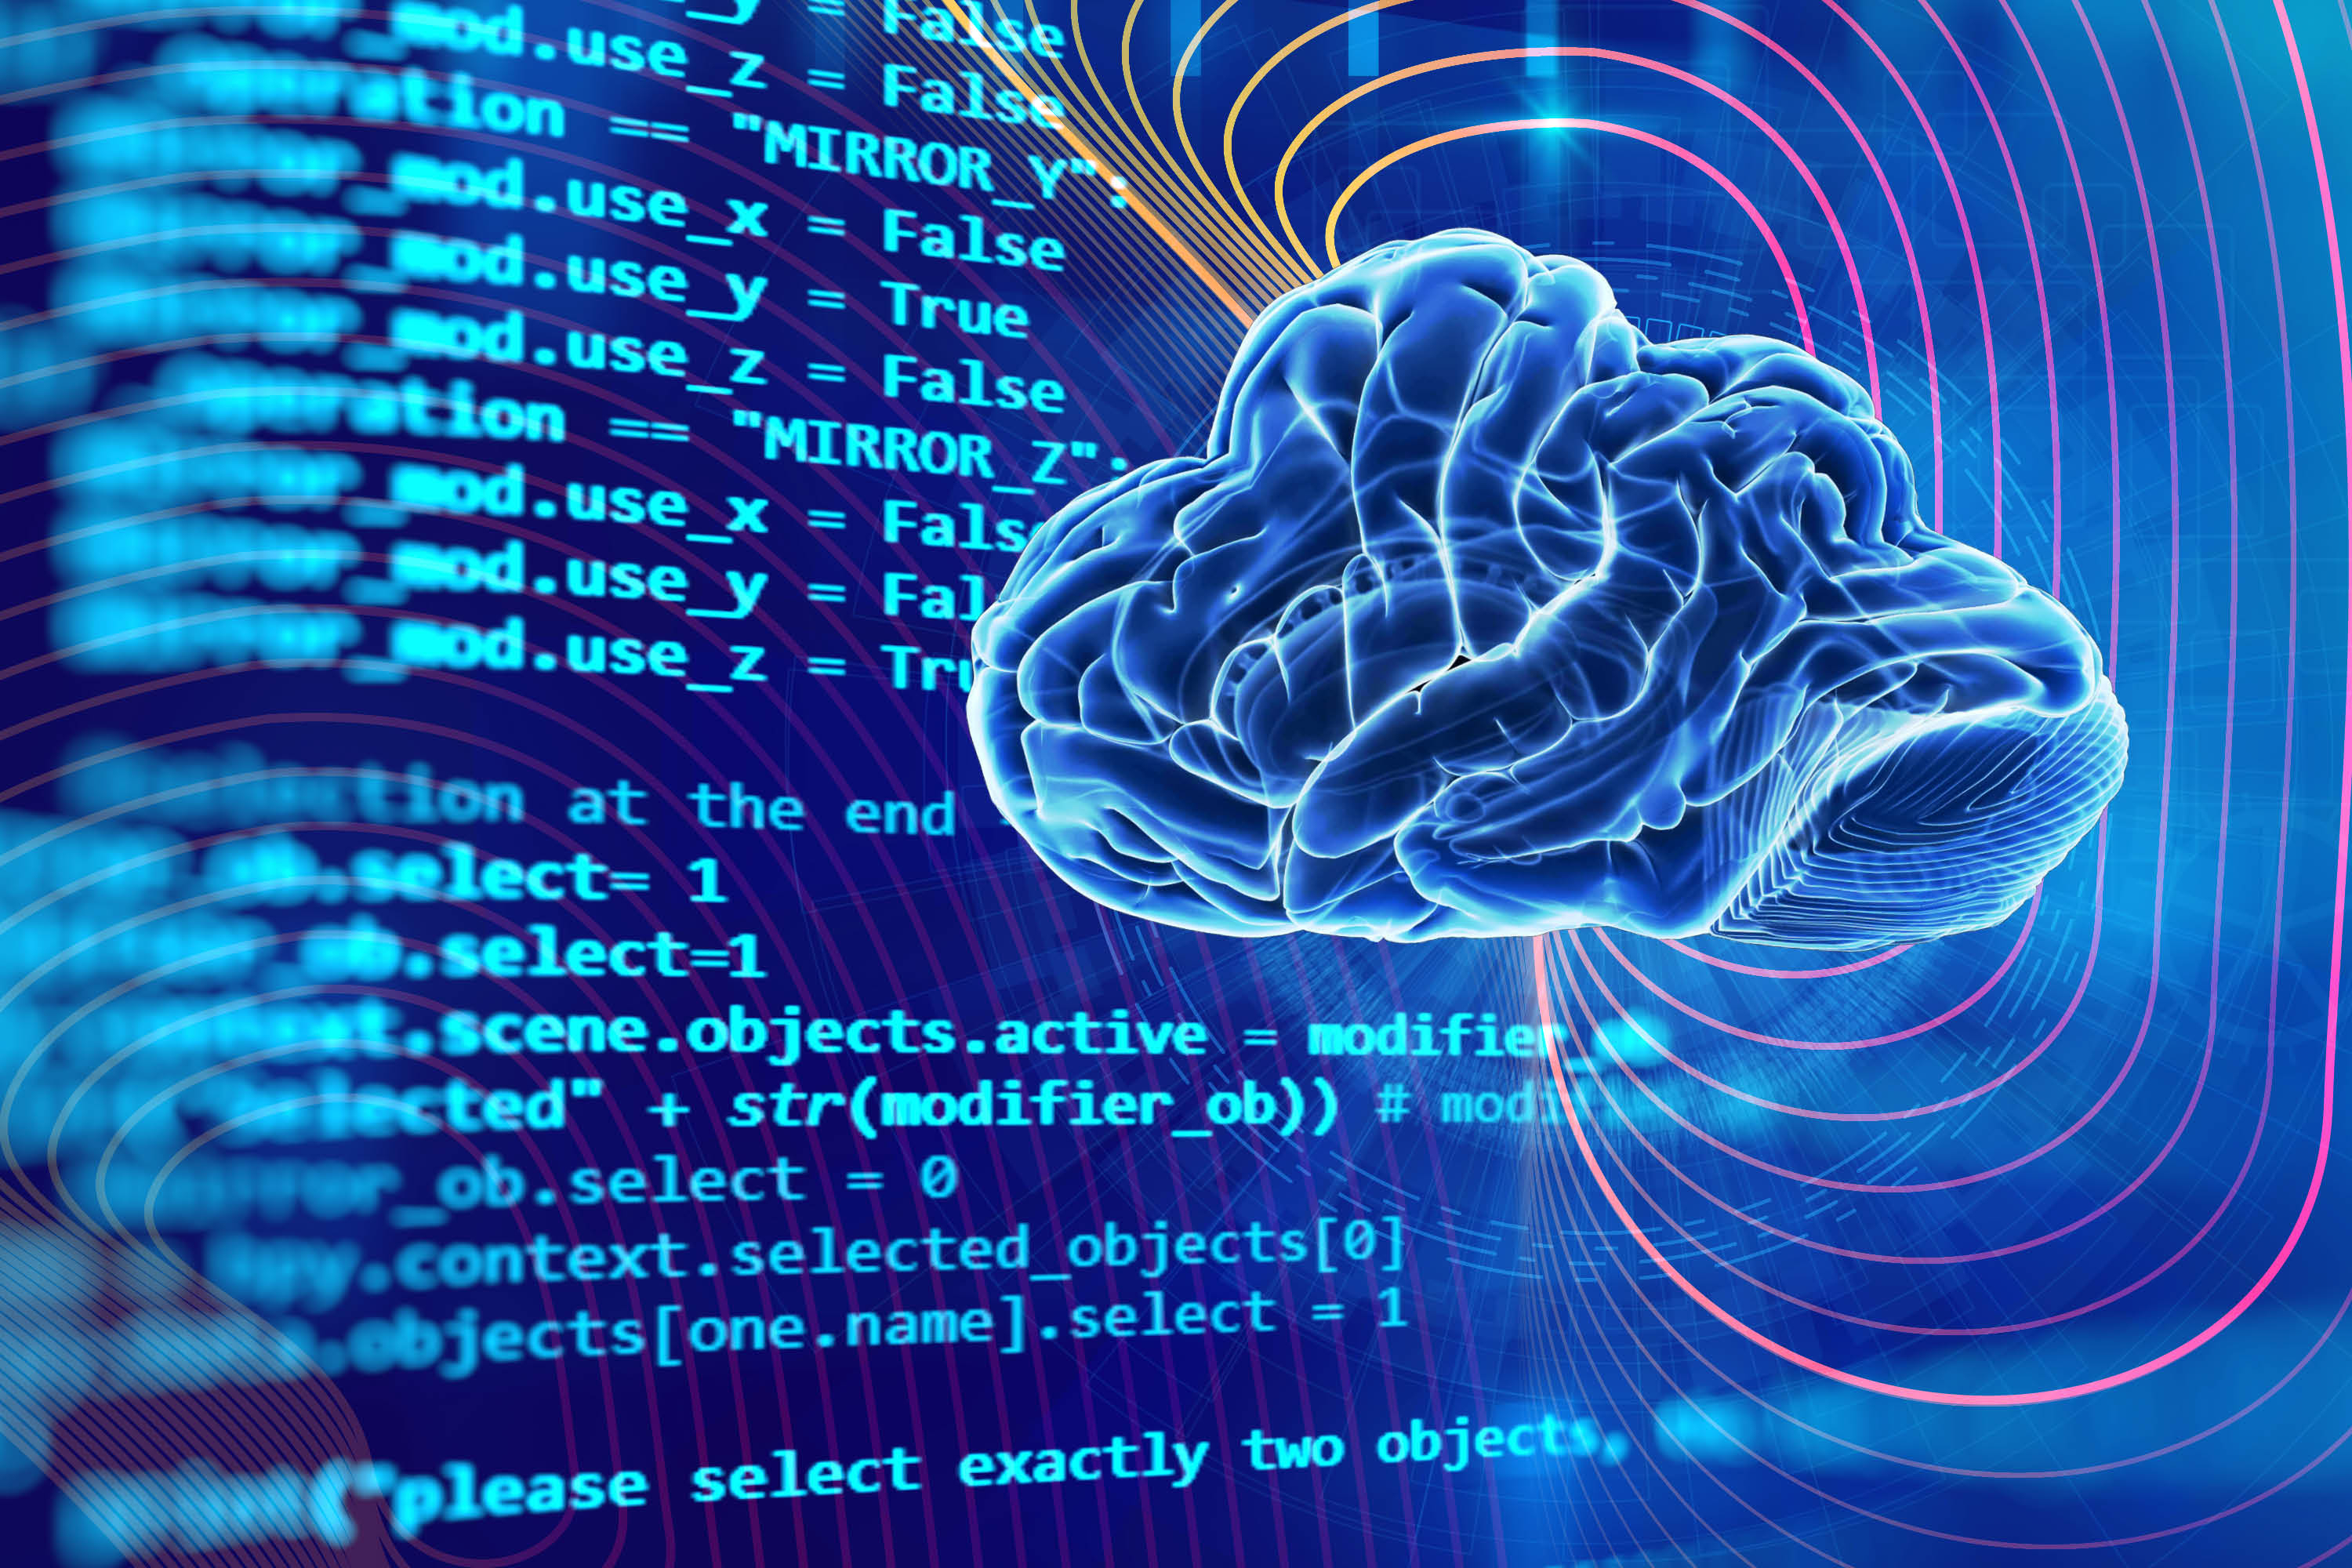 How Does AIOps Integrate AI and Machine Learning into IT Operations?